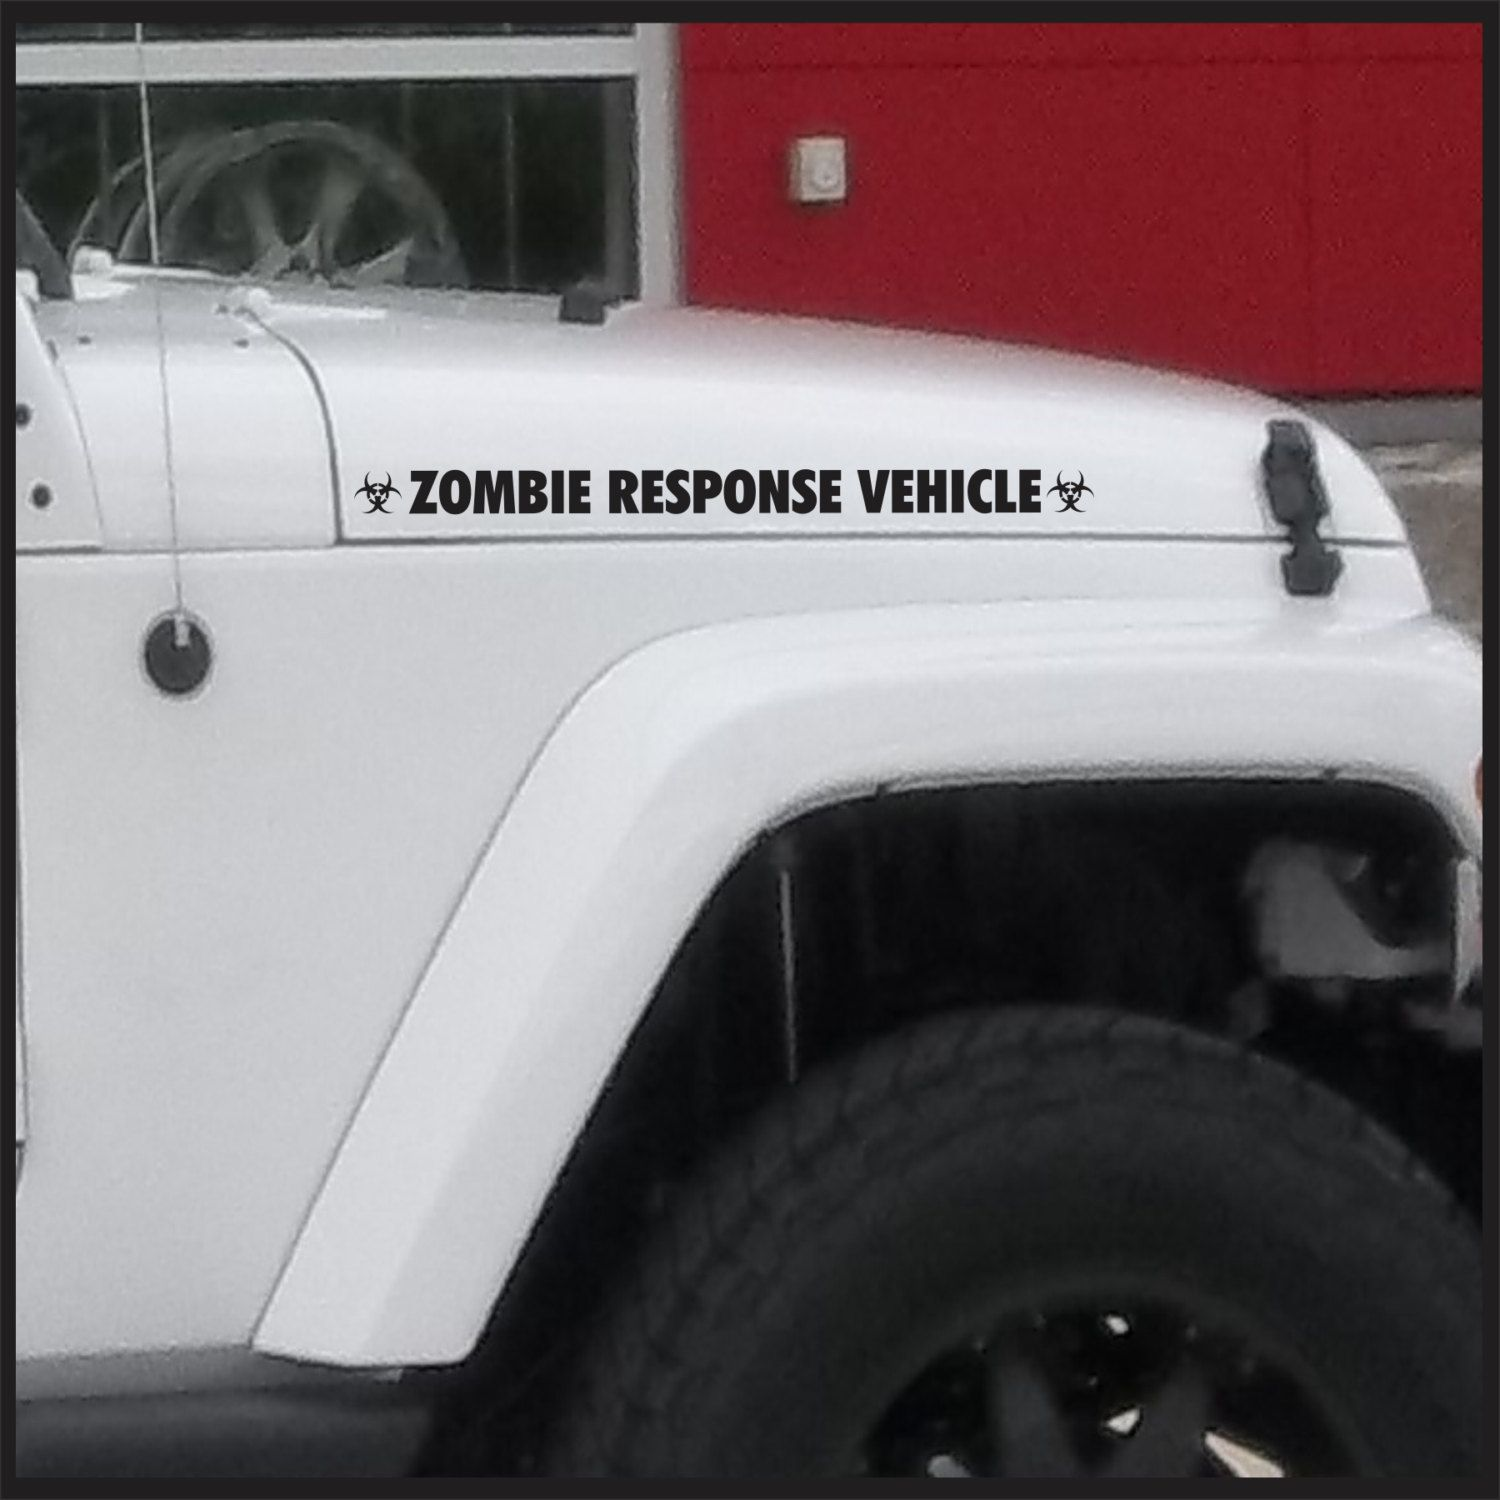 Zombie response vehicle sticker set for jeep vinyl decal apocalypse car truck 4x4 funny bumper